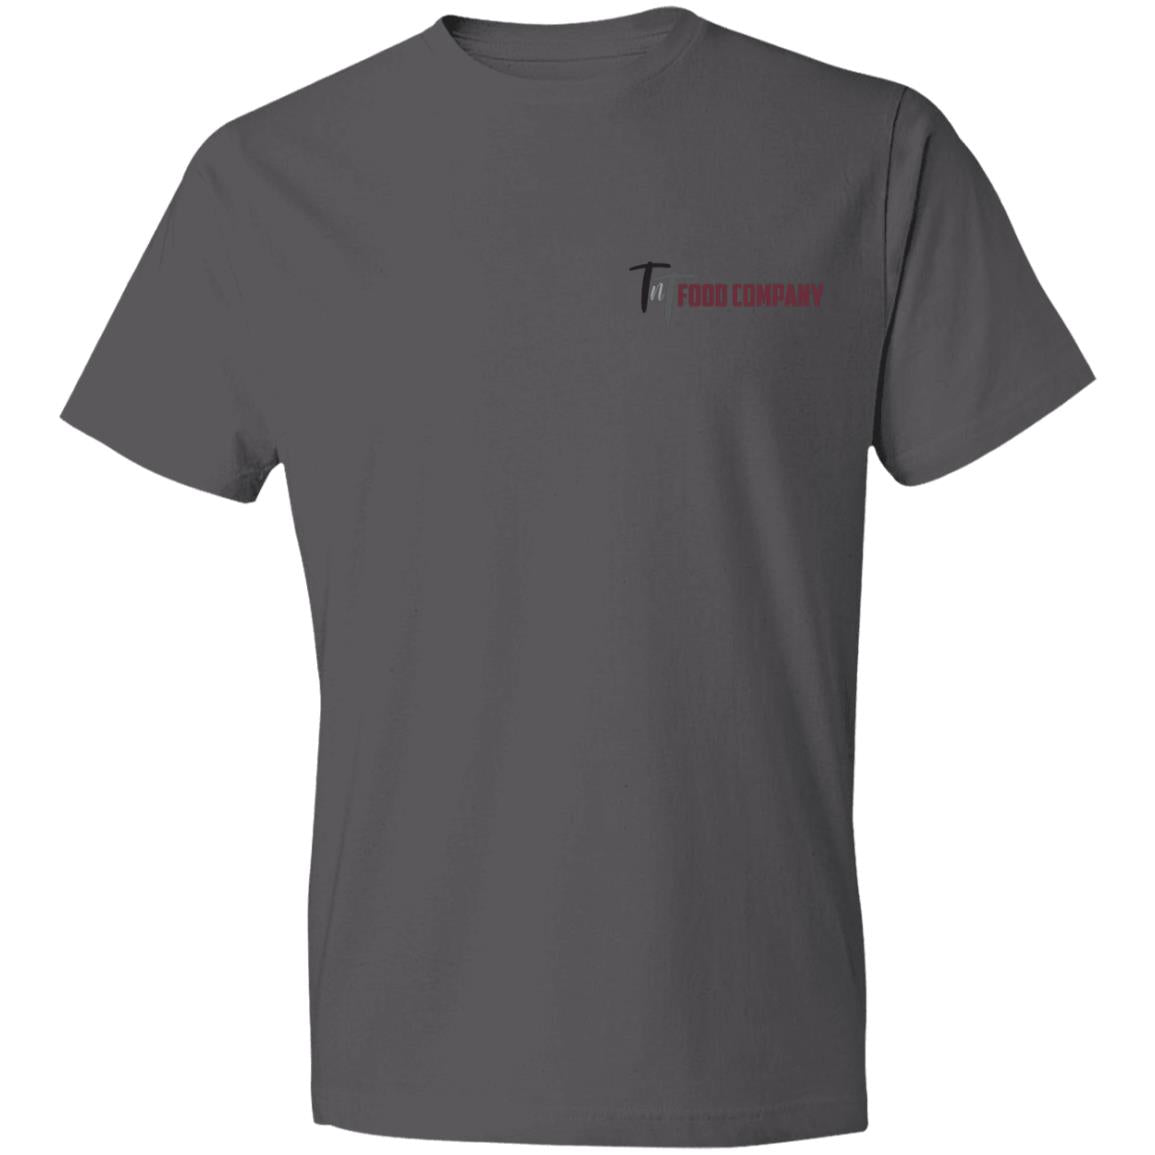 TNT LOGO - GREY - WIDE 980 Anvil Lightweight T-Shirt 4.5 oz